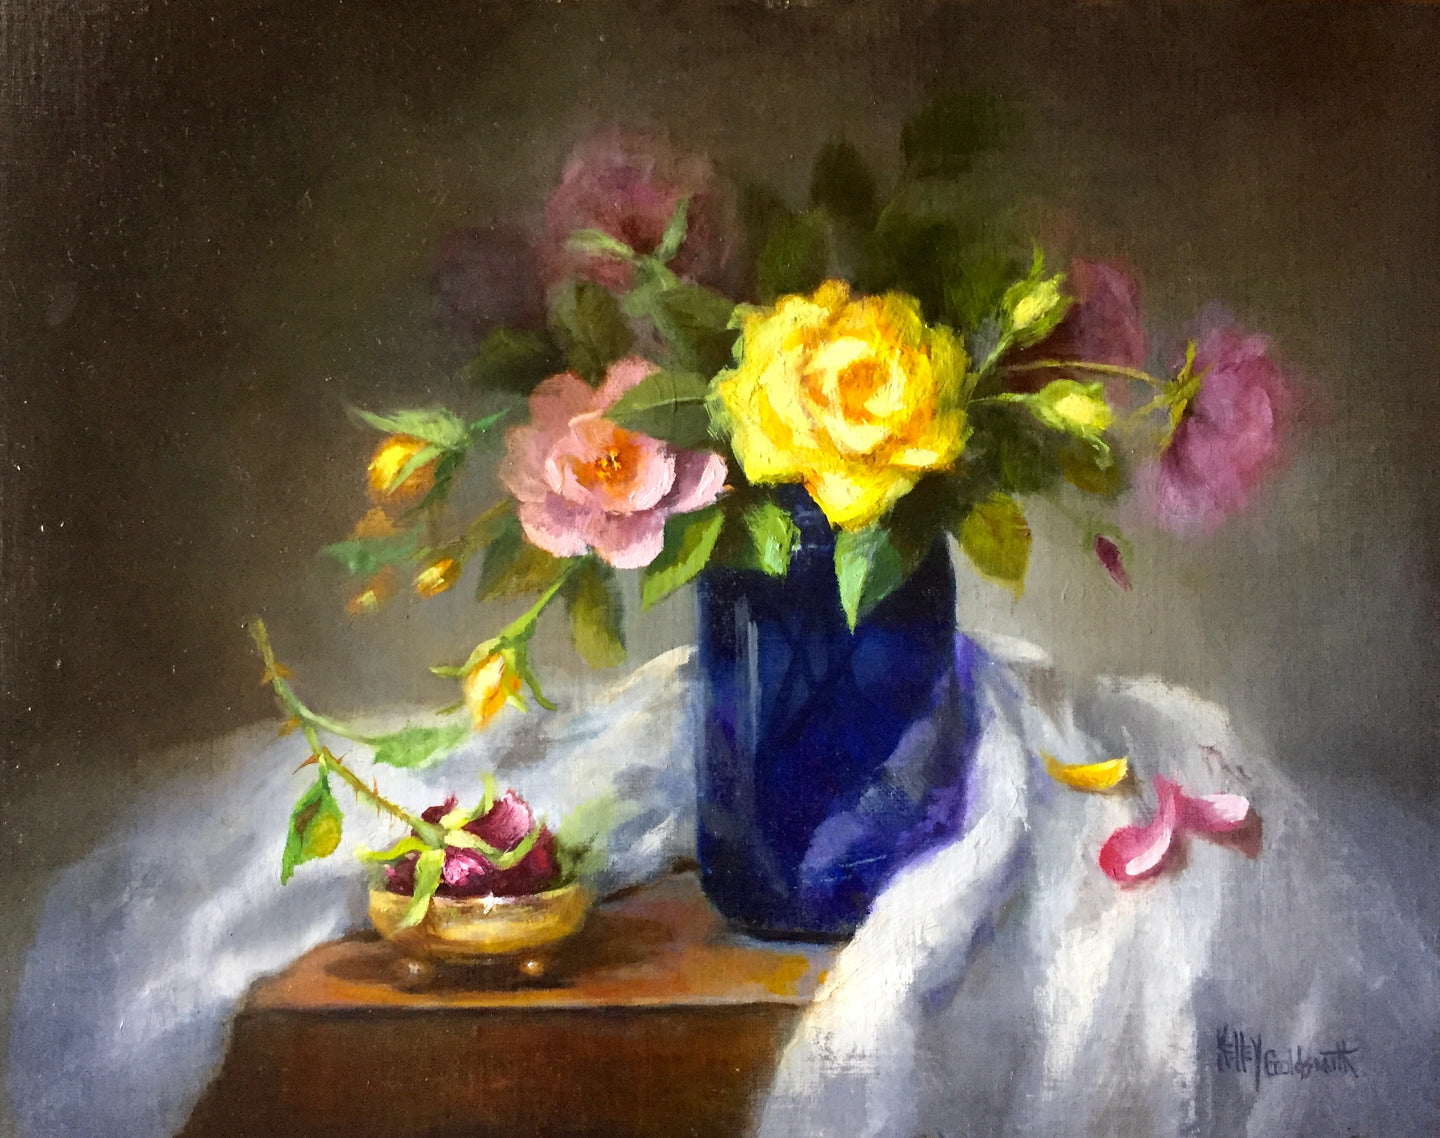 Deborah's Roses by Kelley Goldsmith